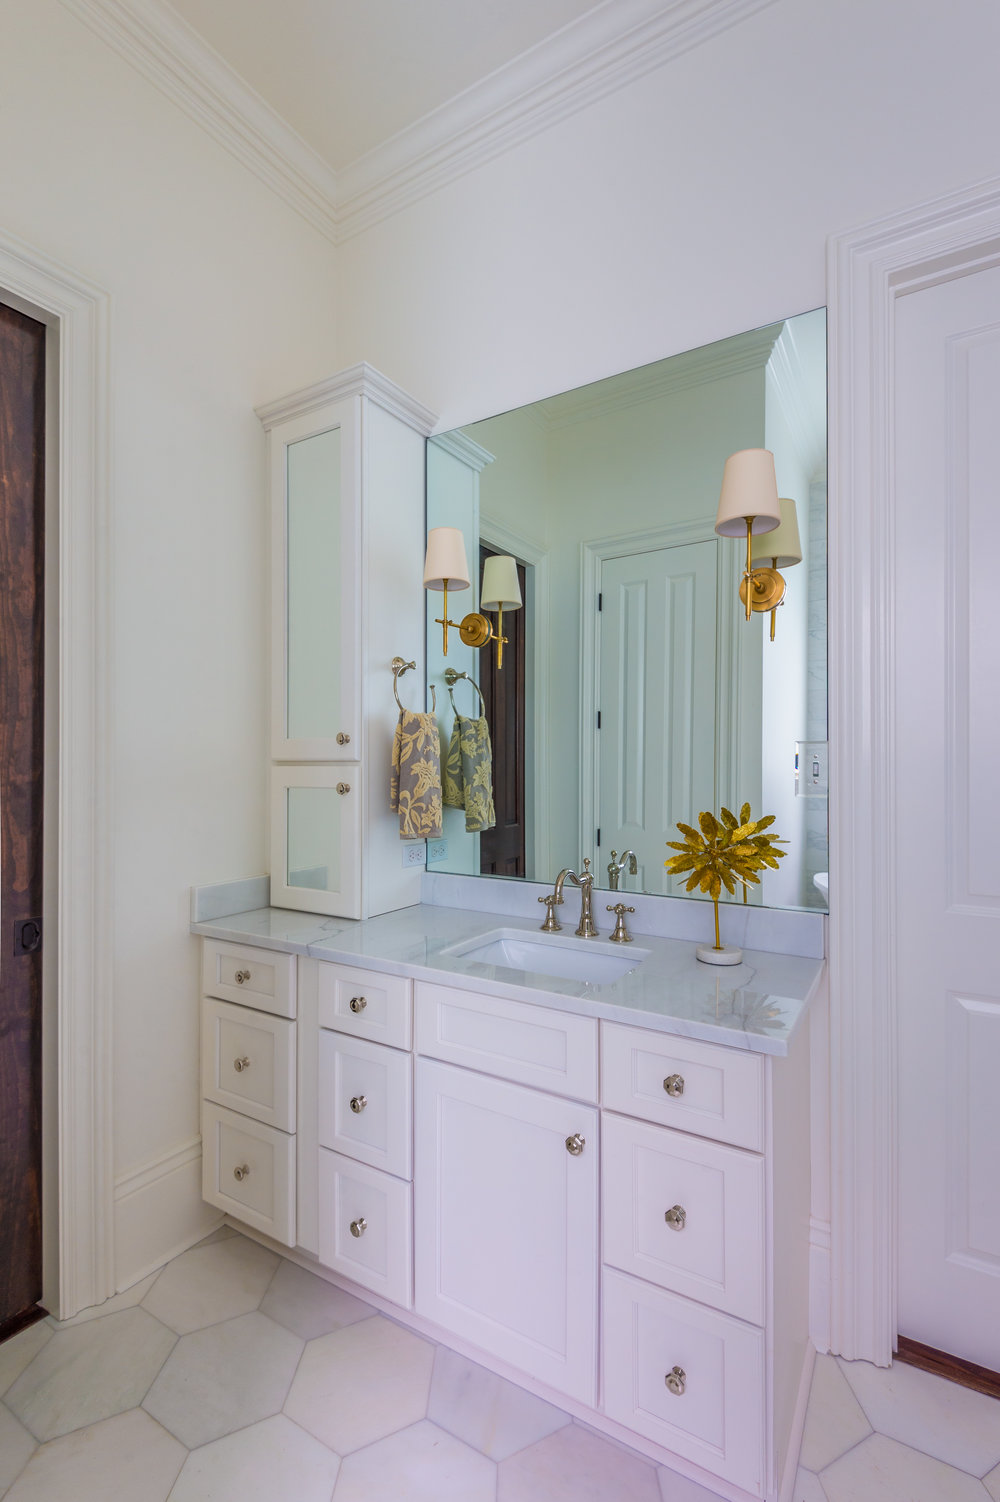 KHB Interiors master bathroom vanity metairie interior decorator new construction new orleans .jpg